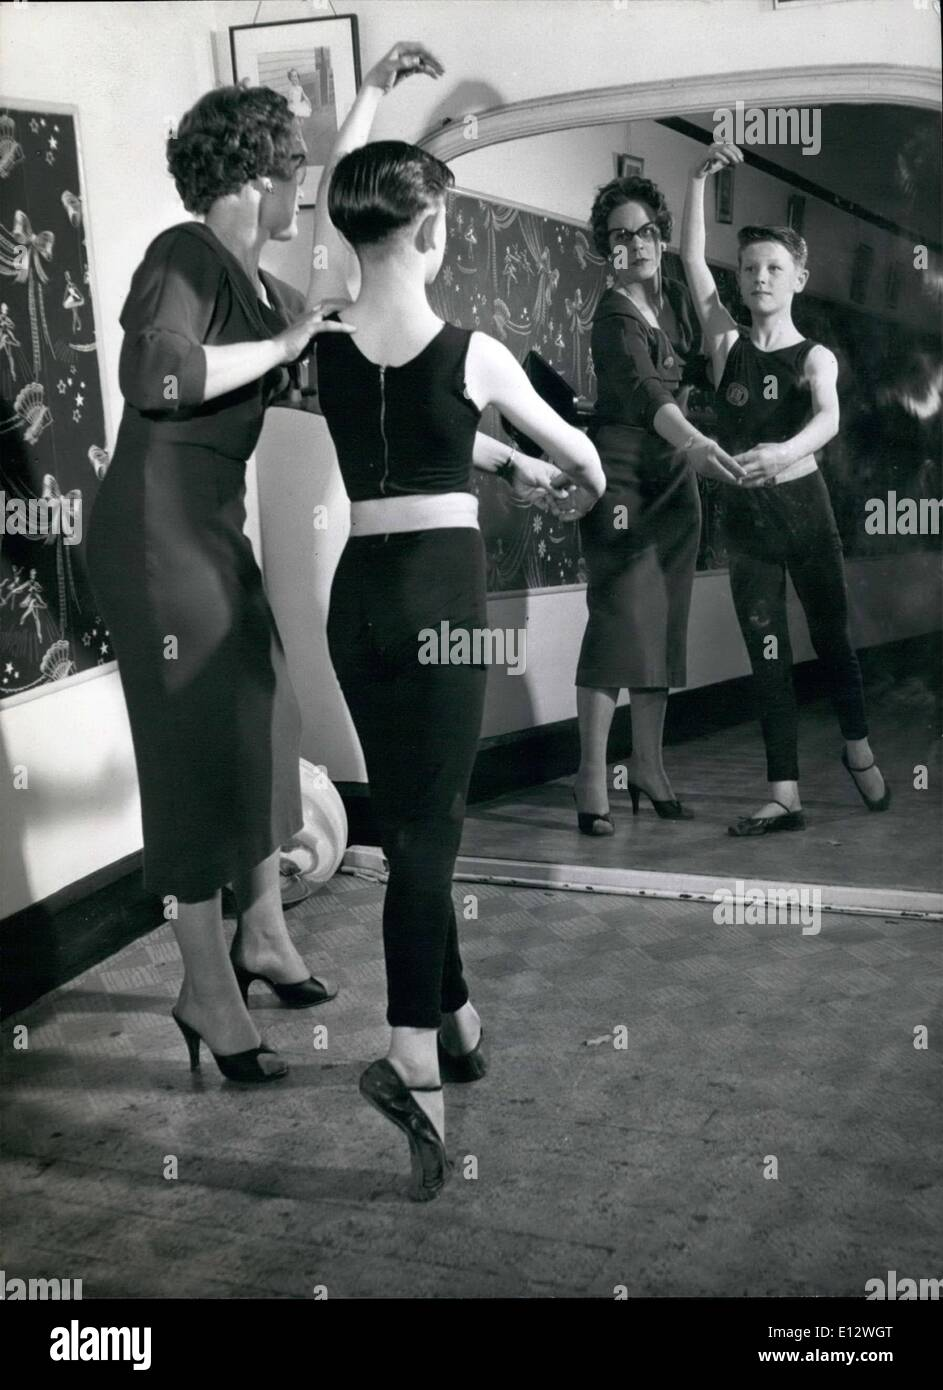 Feb. 25, 2012 - John practices ballet before the mirror assisted by Liss Dora Crowley who has been teaching him for the past 21/2 years. - Stock Image